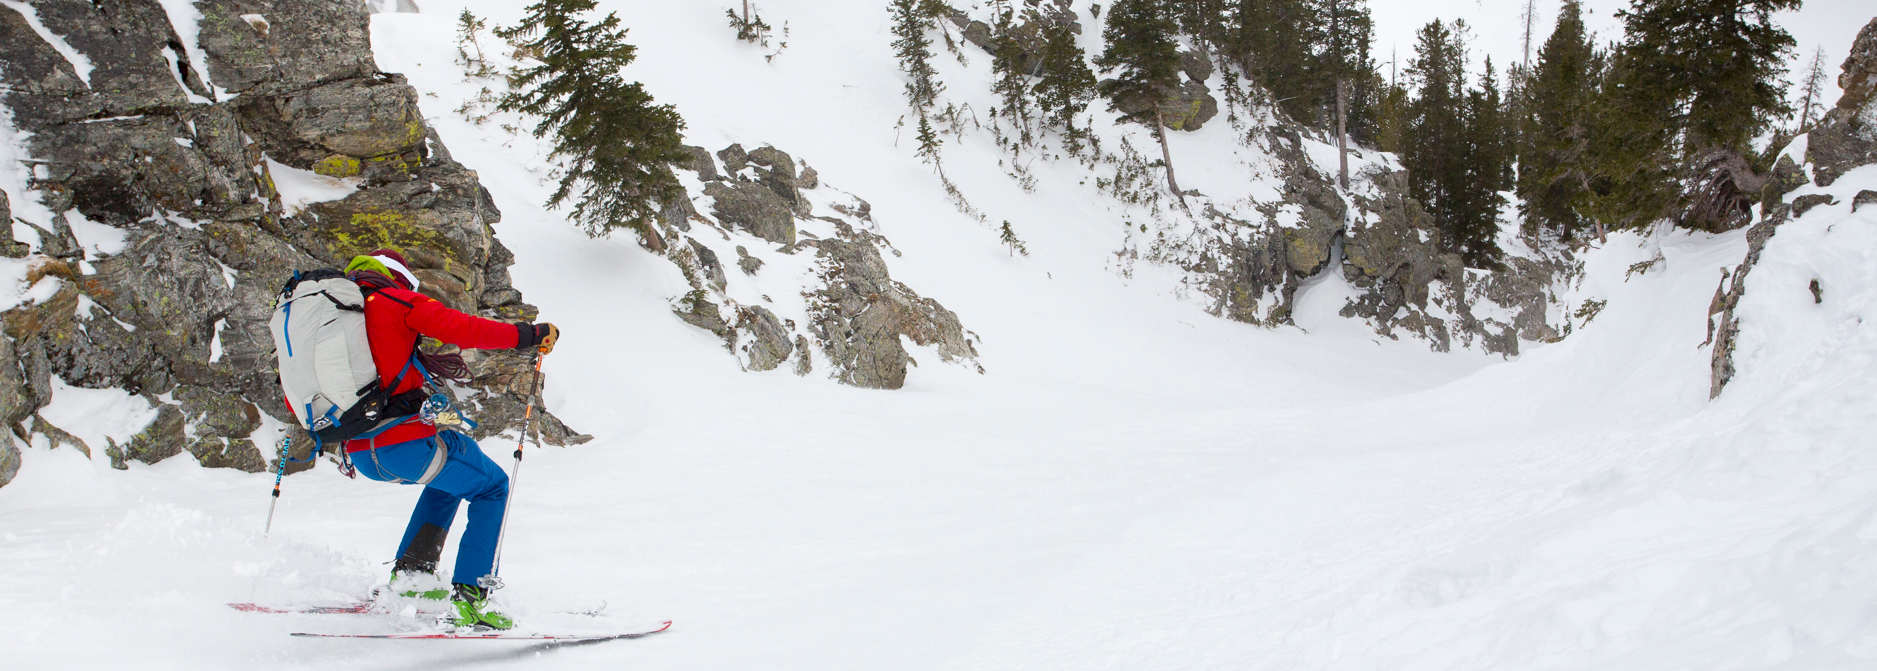 Teton Backcountry Skiing – Photo: David Subbs